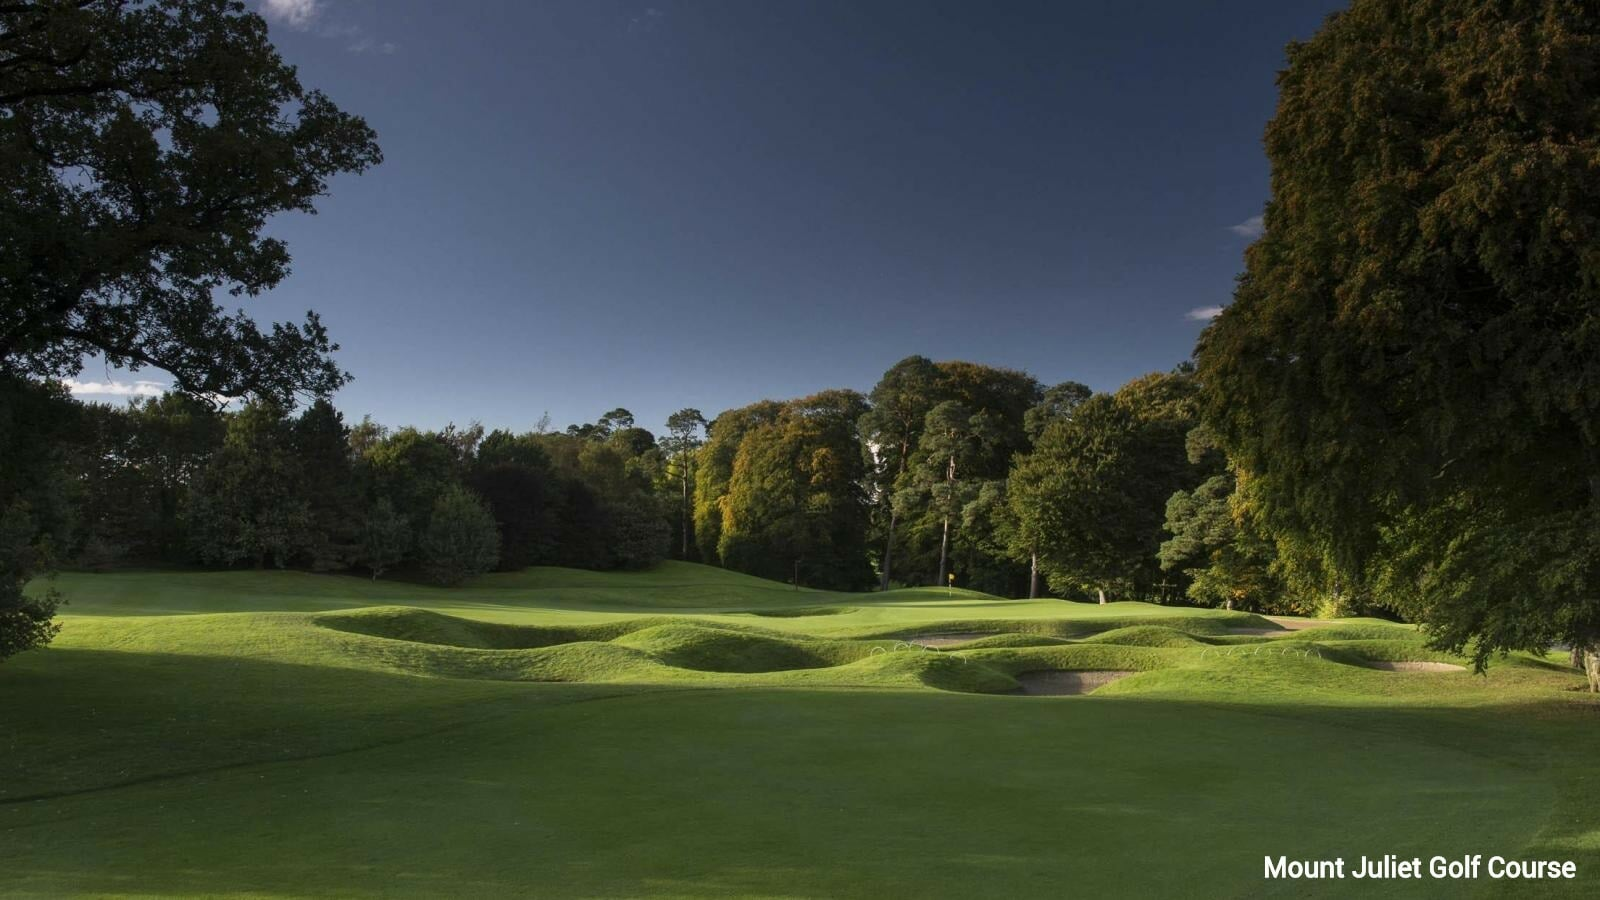 Undulating land and many bunkers feature on the Mount Juliet golf course